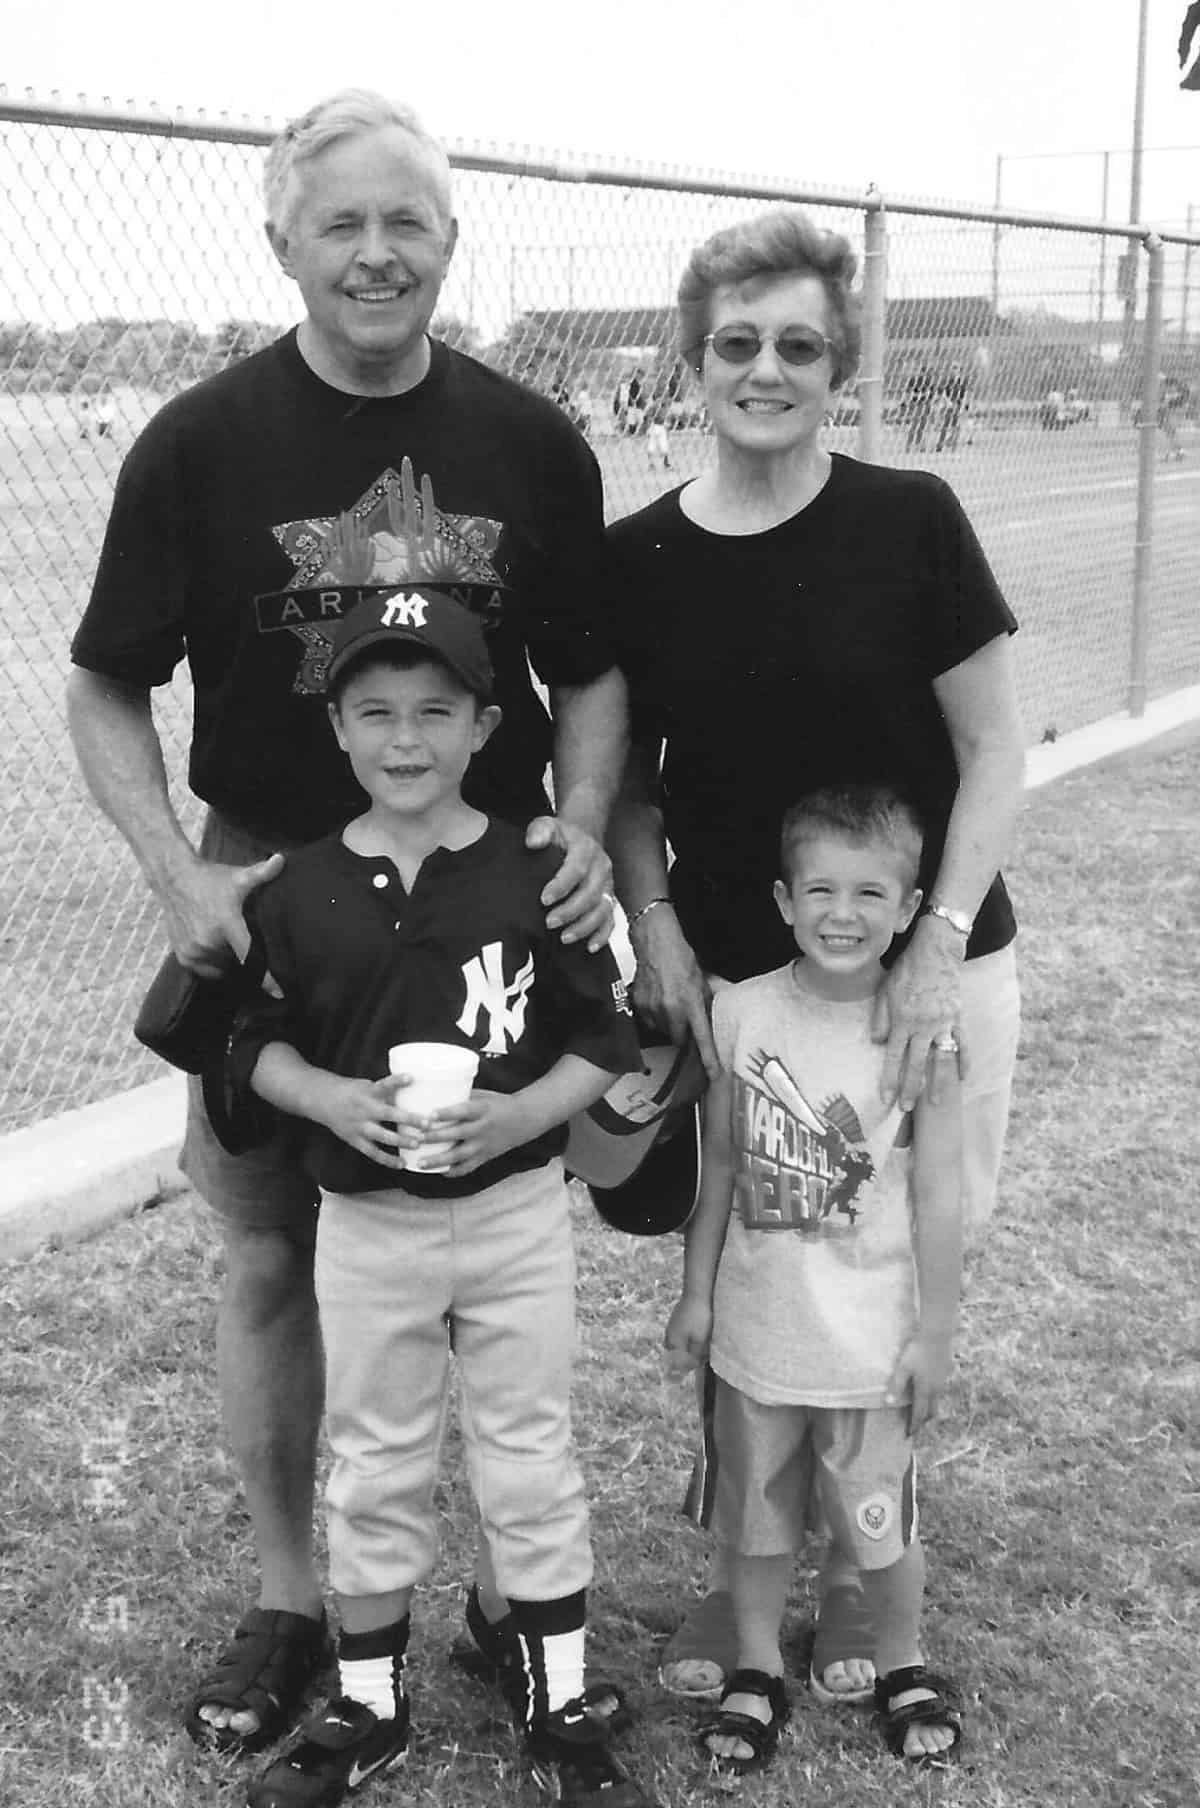 My parents at a baseball game, posed with our boys.